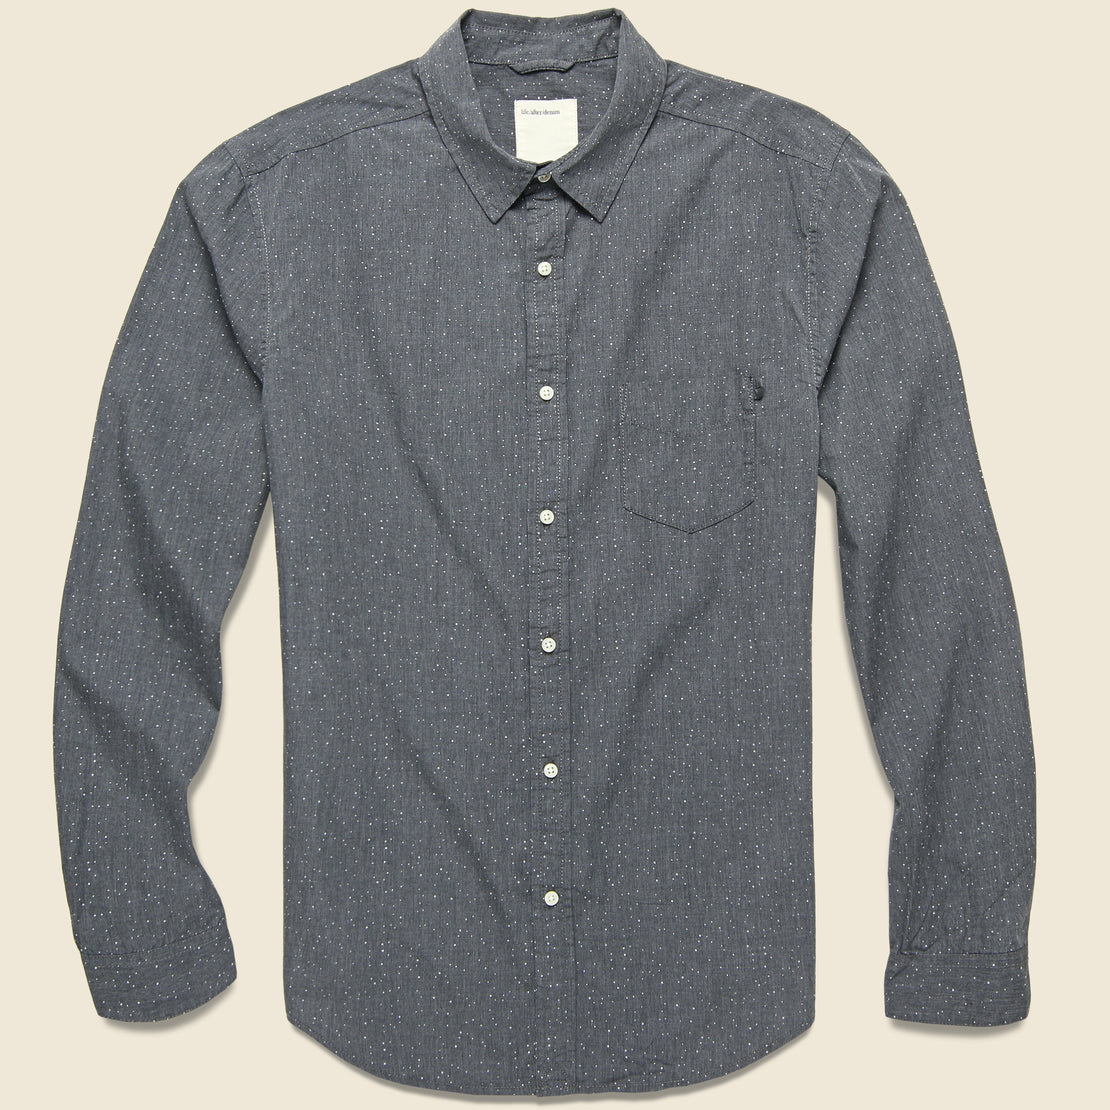 Life After Denim Cosmic Shirt - Heather Charcoal